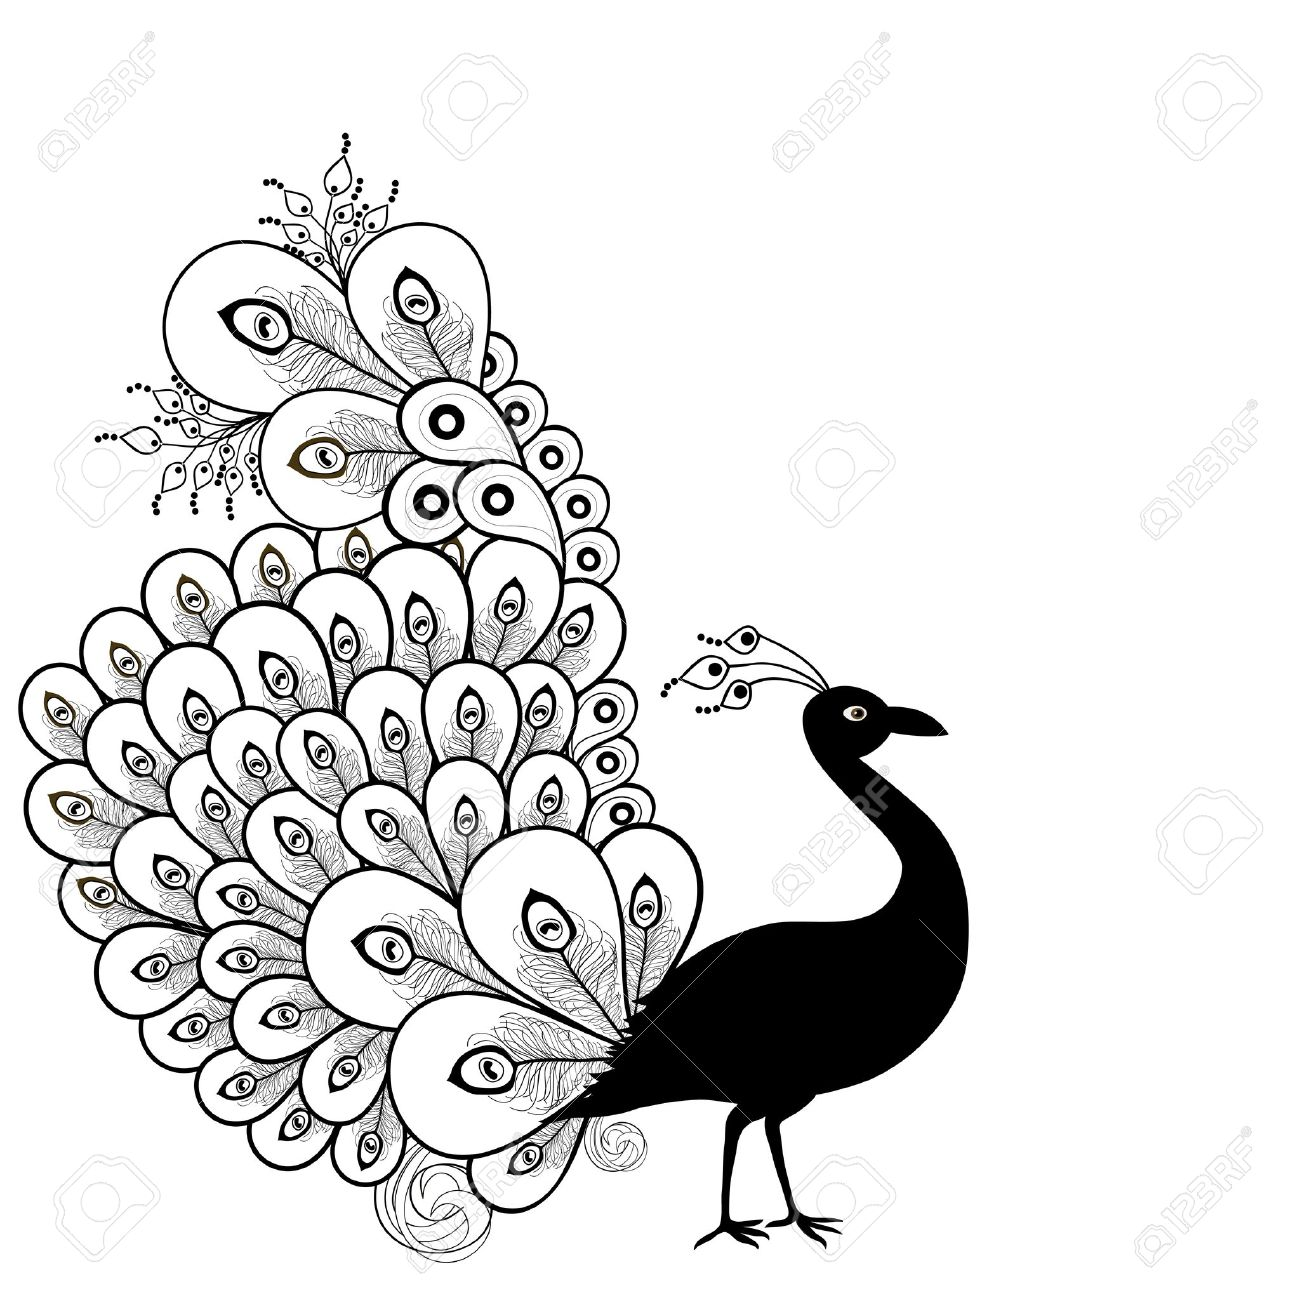 White Peafowl clipart #18, Download drawings